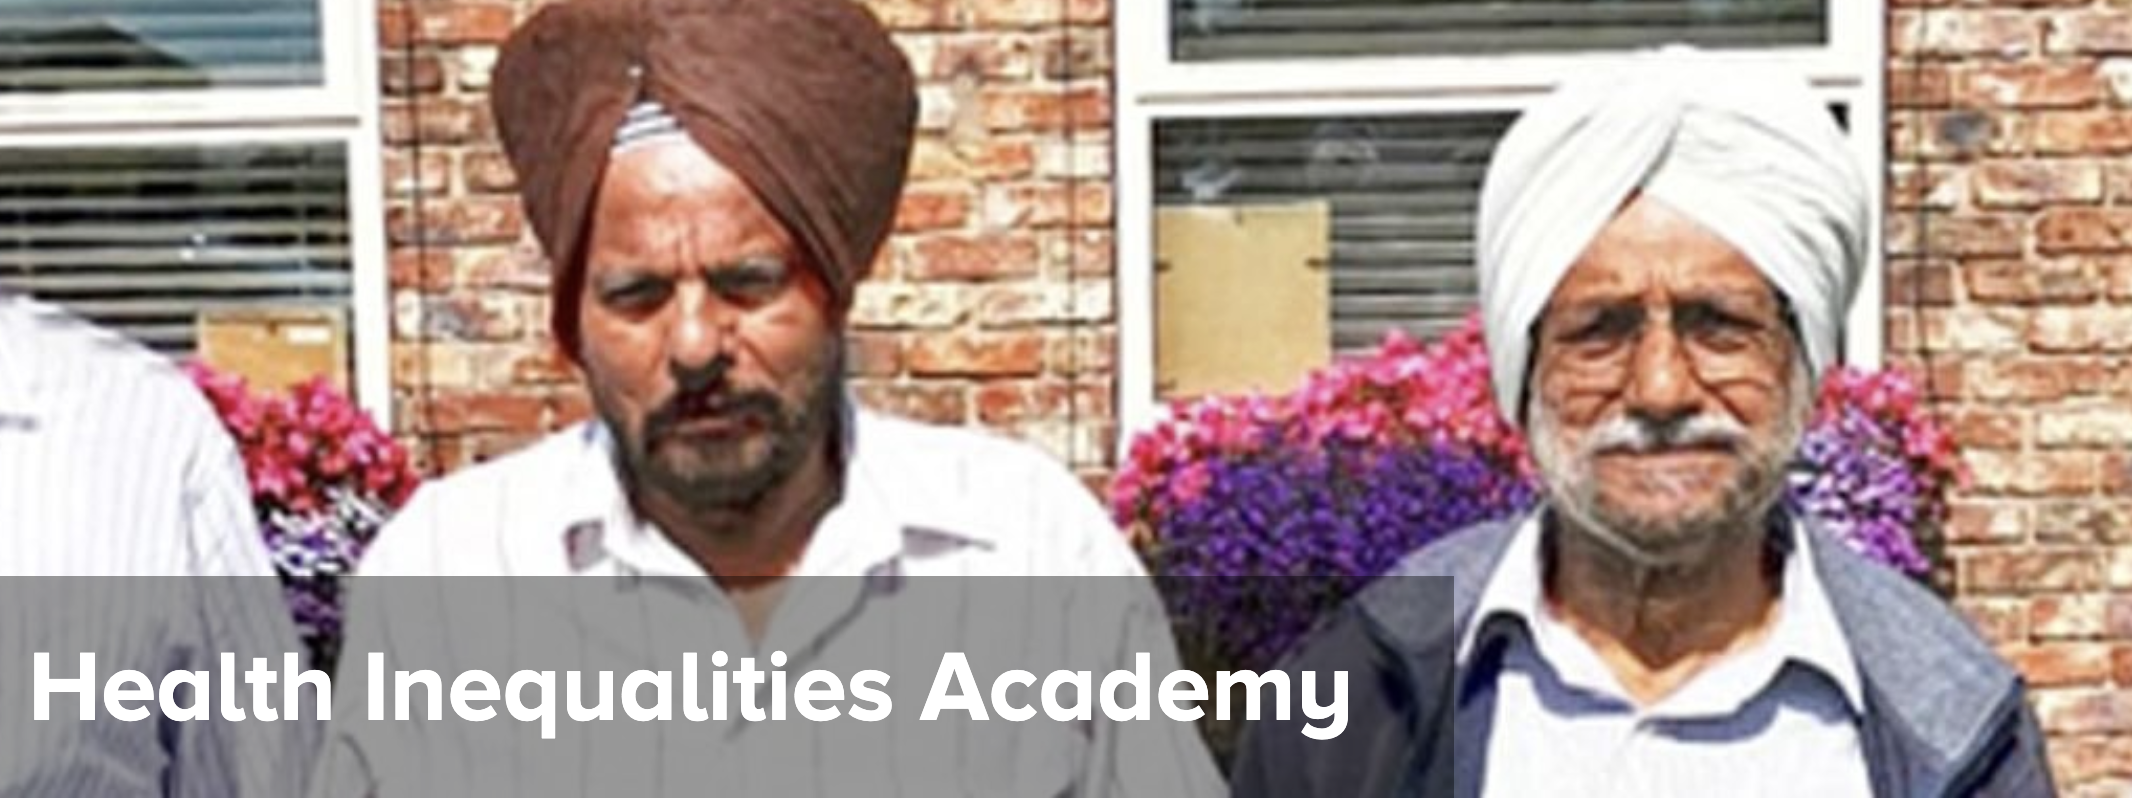 Two men in turbans with the words Health Inequalities Academy